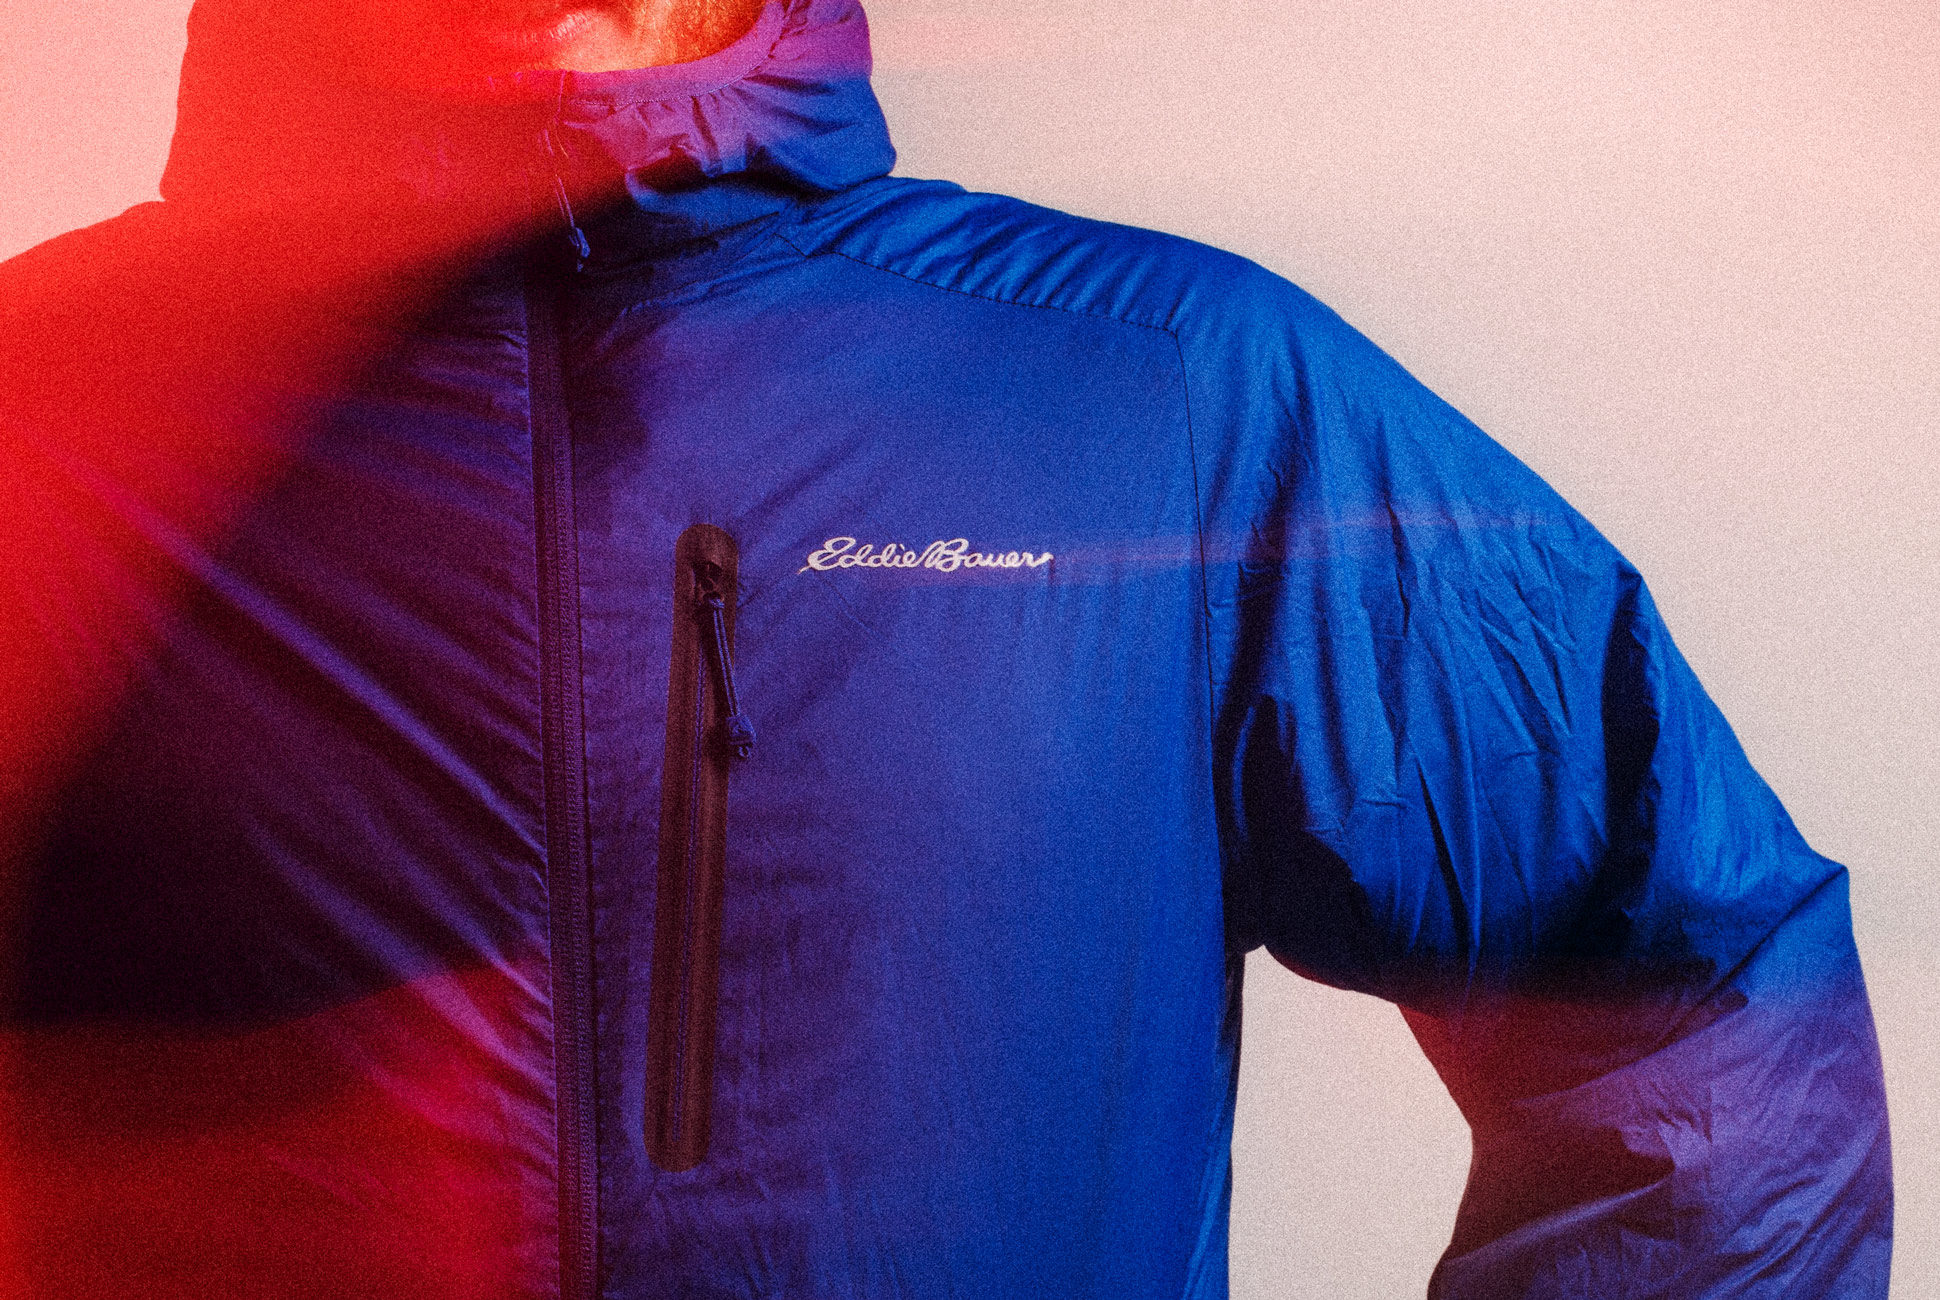 Eddie Bauer's New Jacket Pushes Down Insulation Technology Into the Stratosphere - For two months on Everest, Adrian Ballinger had been testing a new, cutting-edge mid-layer jacket called the Evertherm.